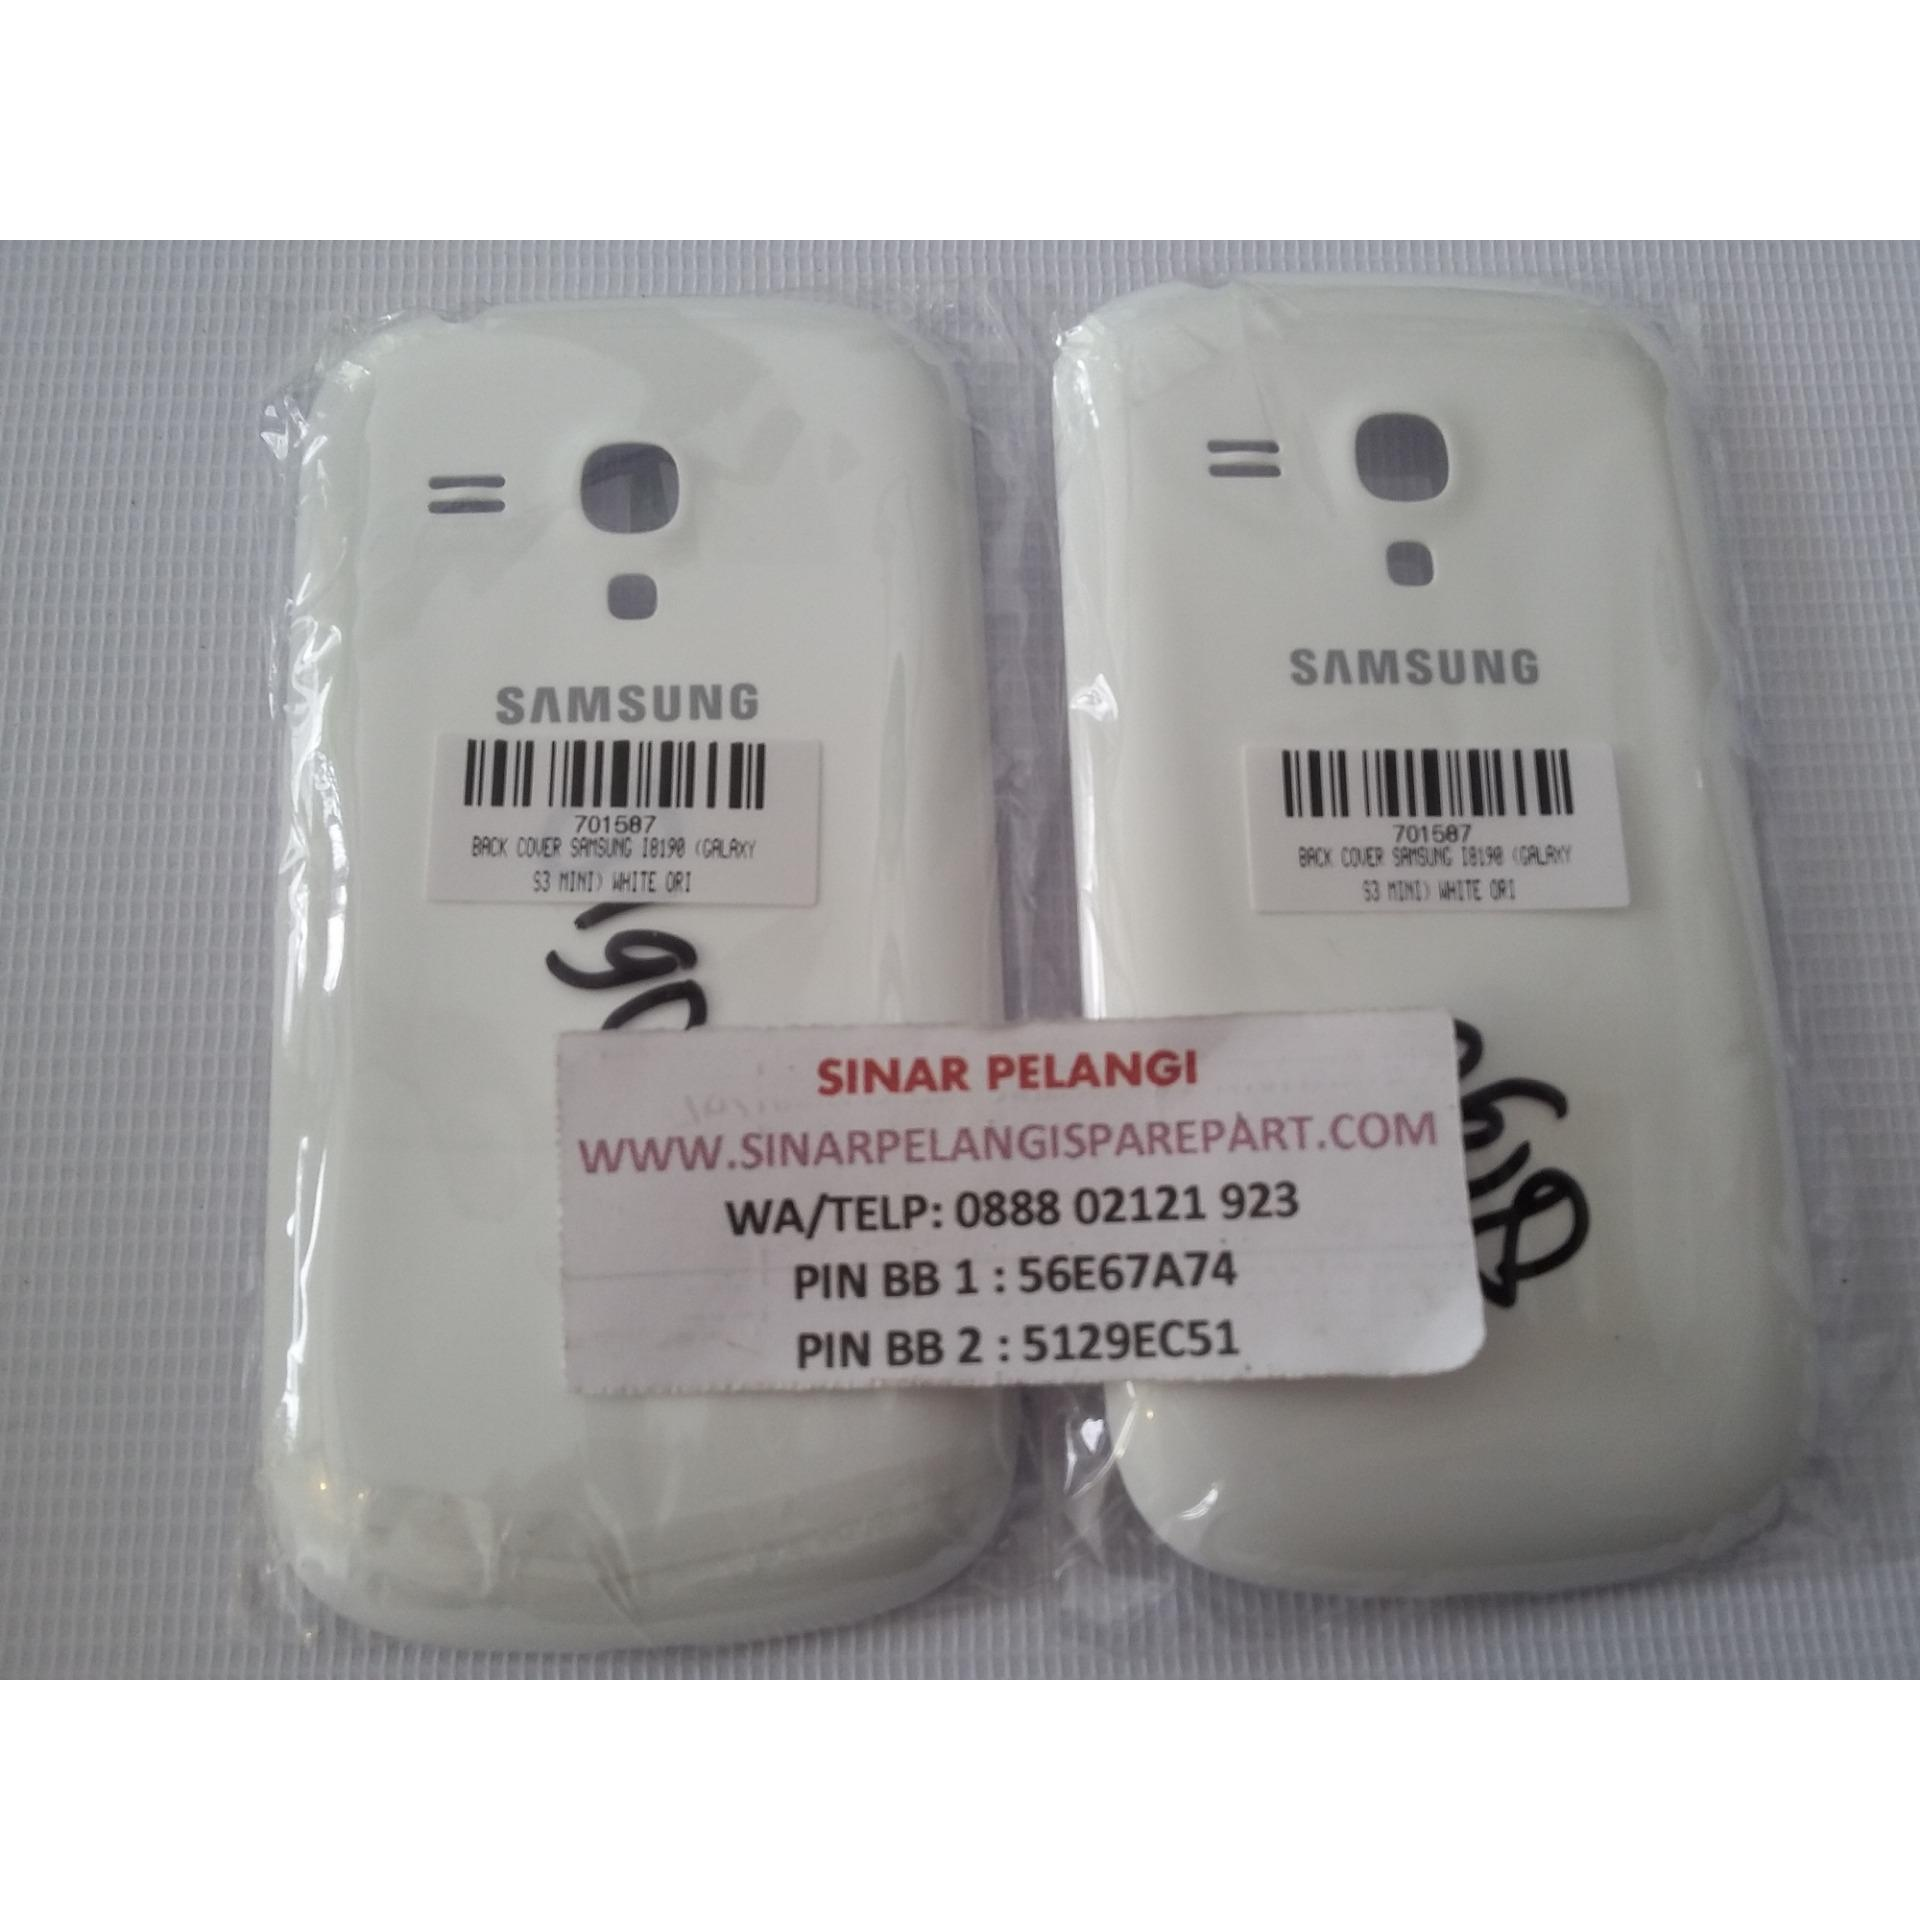 Daftar Harga Back Door Xiaomi Redmi 2 Backdoor Tutup Casing Belakang Cover Xiomi Samsung Galaxy I8190 S3 Mini White Battery Baterai